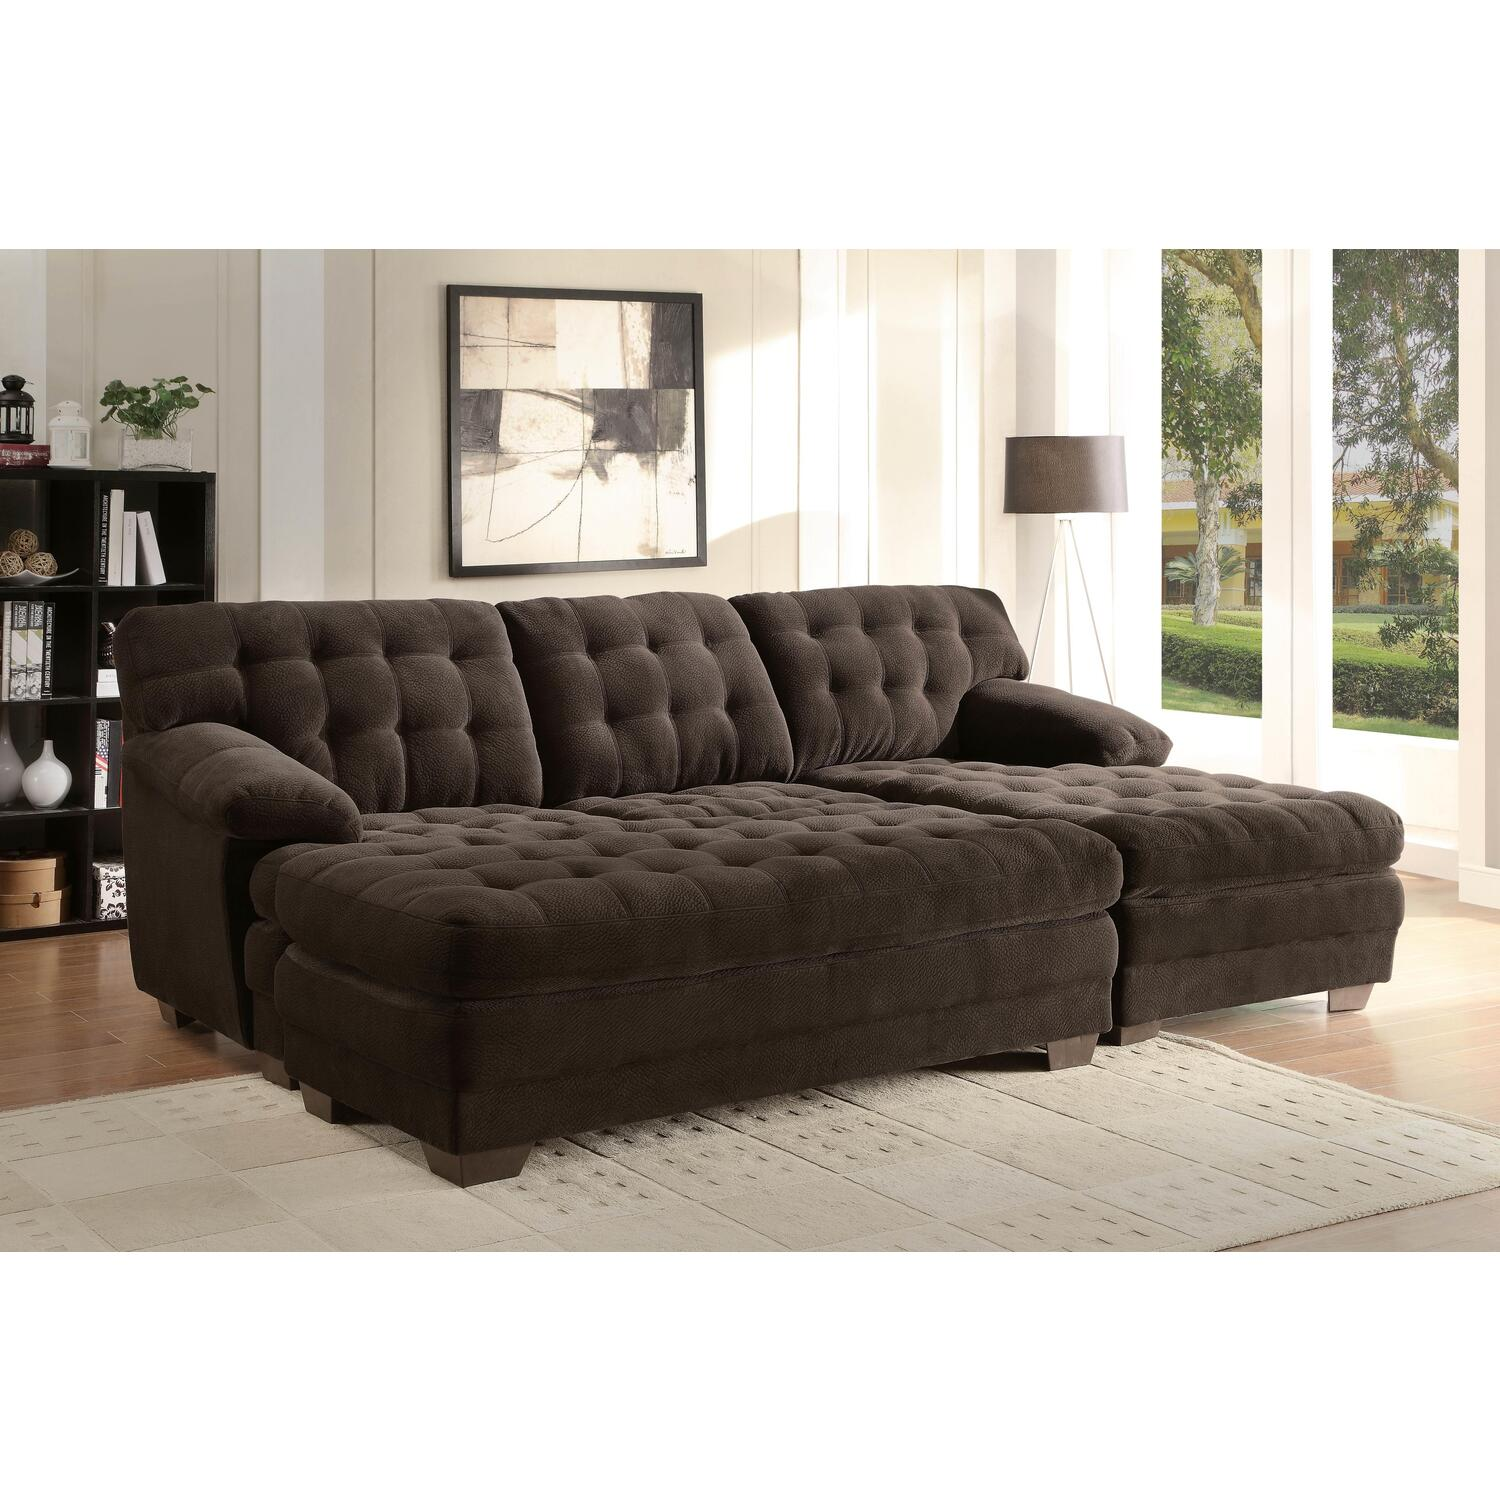 Extra Wide Sectional Sofas With Chaise